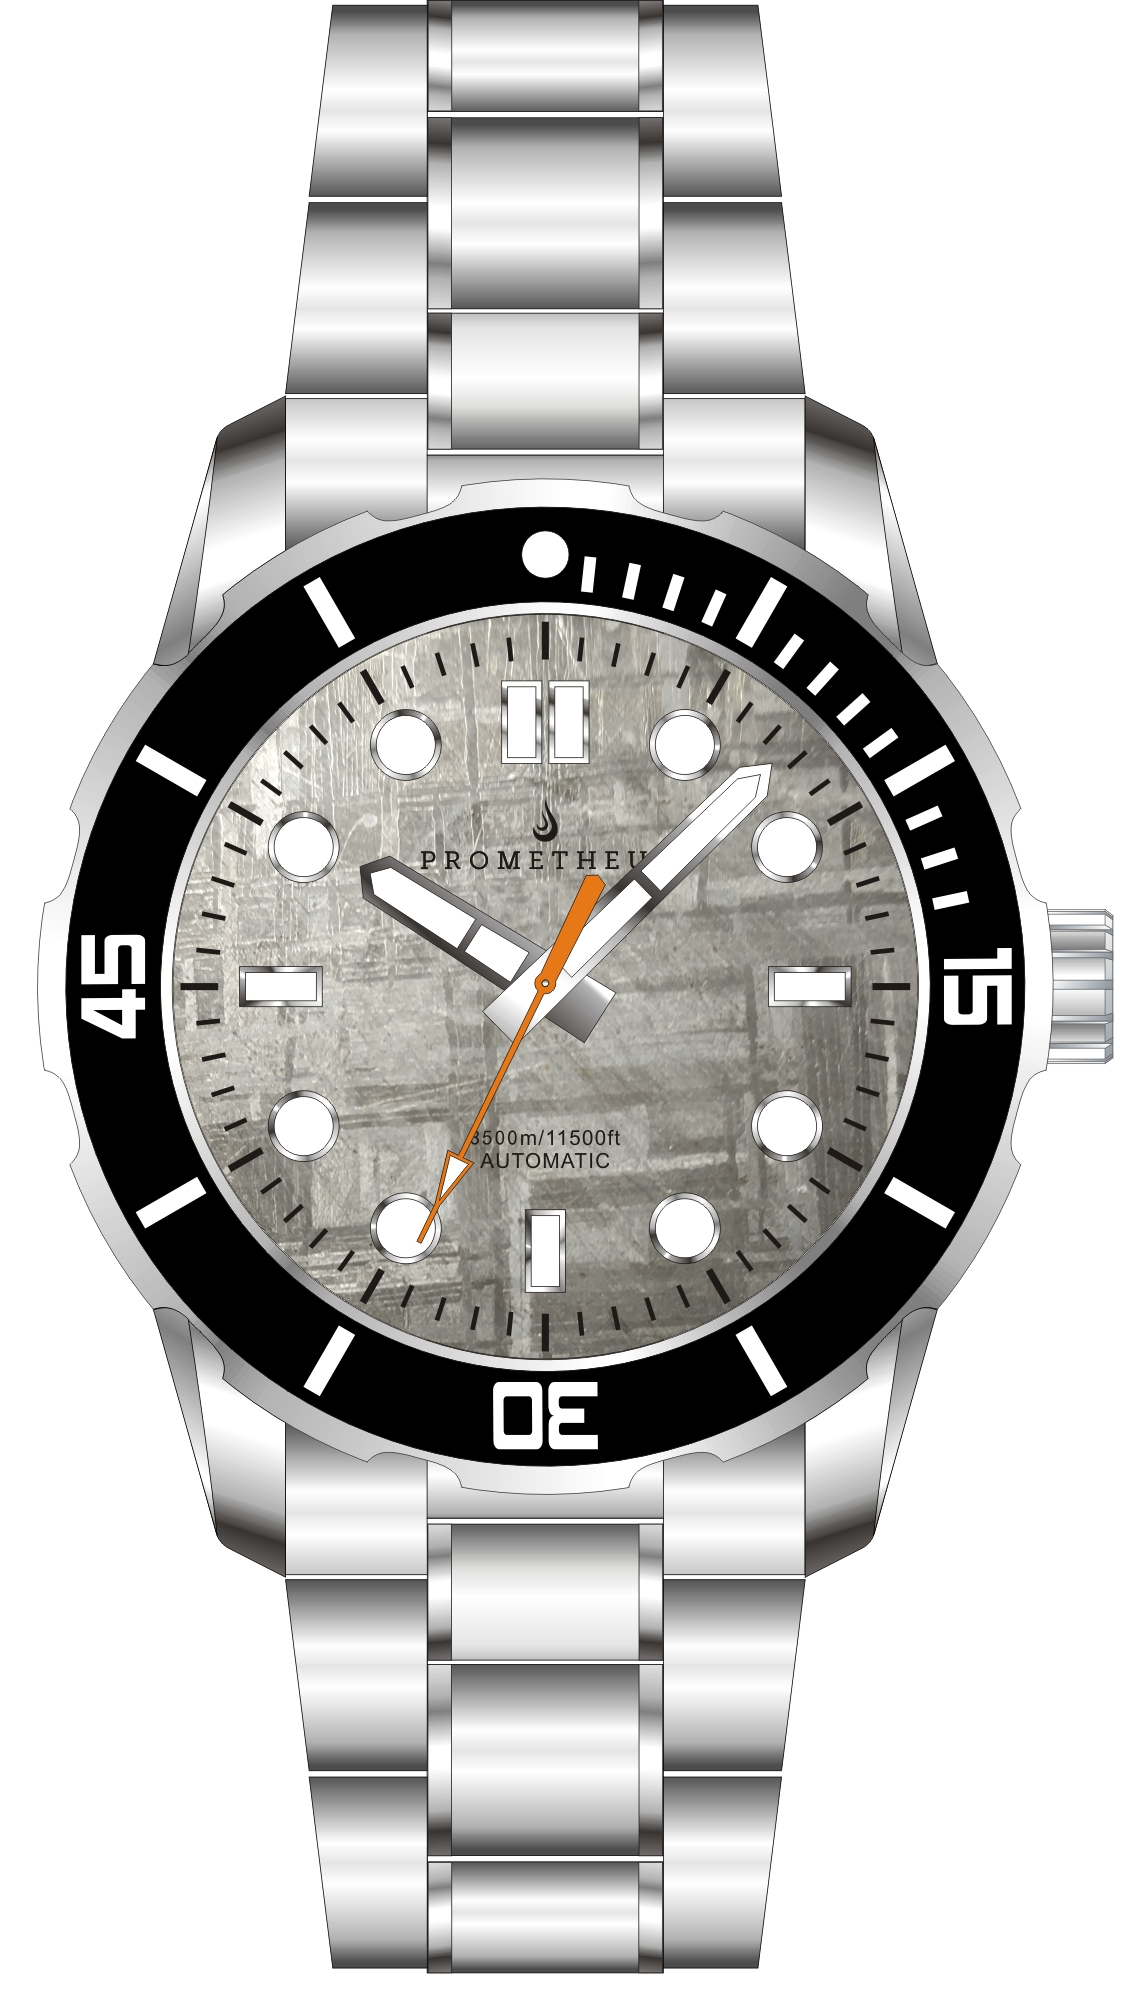 Pre-Order Prometheus Poseidon Meteorite Dial Pencil Hands Orange Seconds No Date 3500m Diver Watch Automatic Miyota 9015